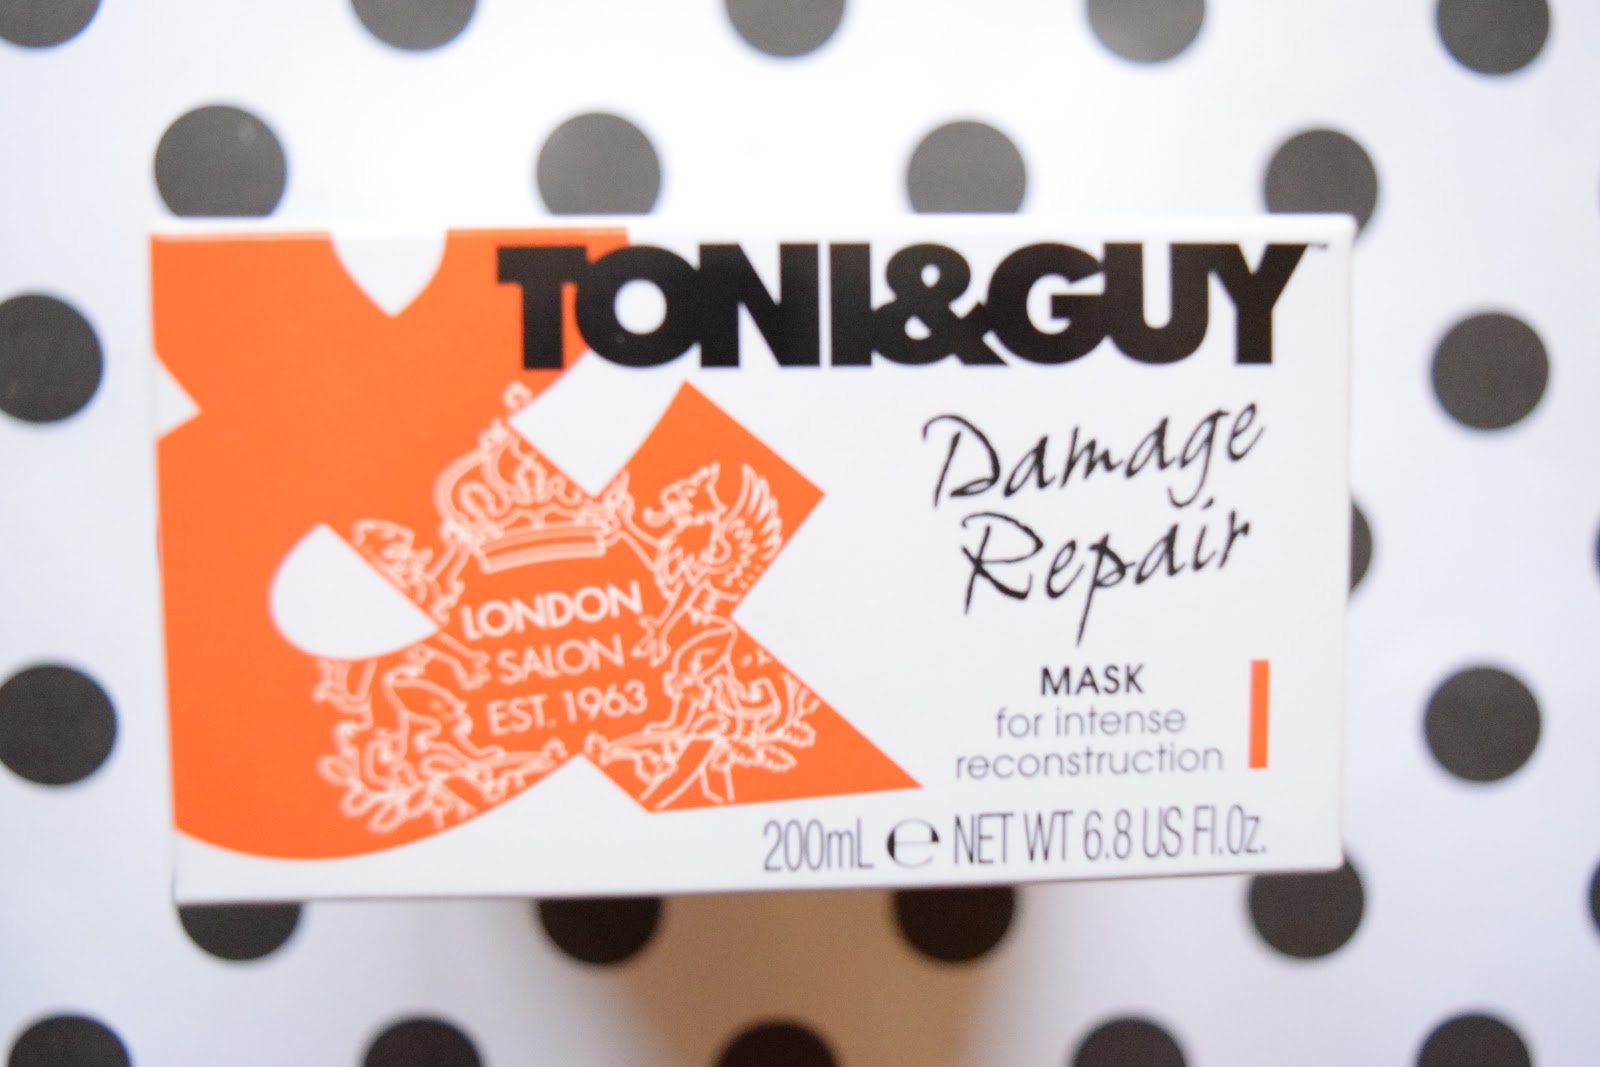 Toni & guy damage repair mask